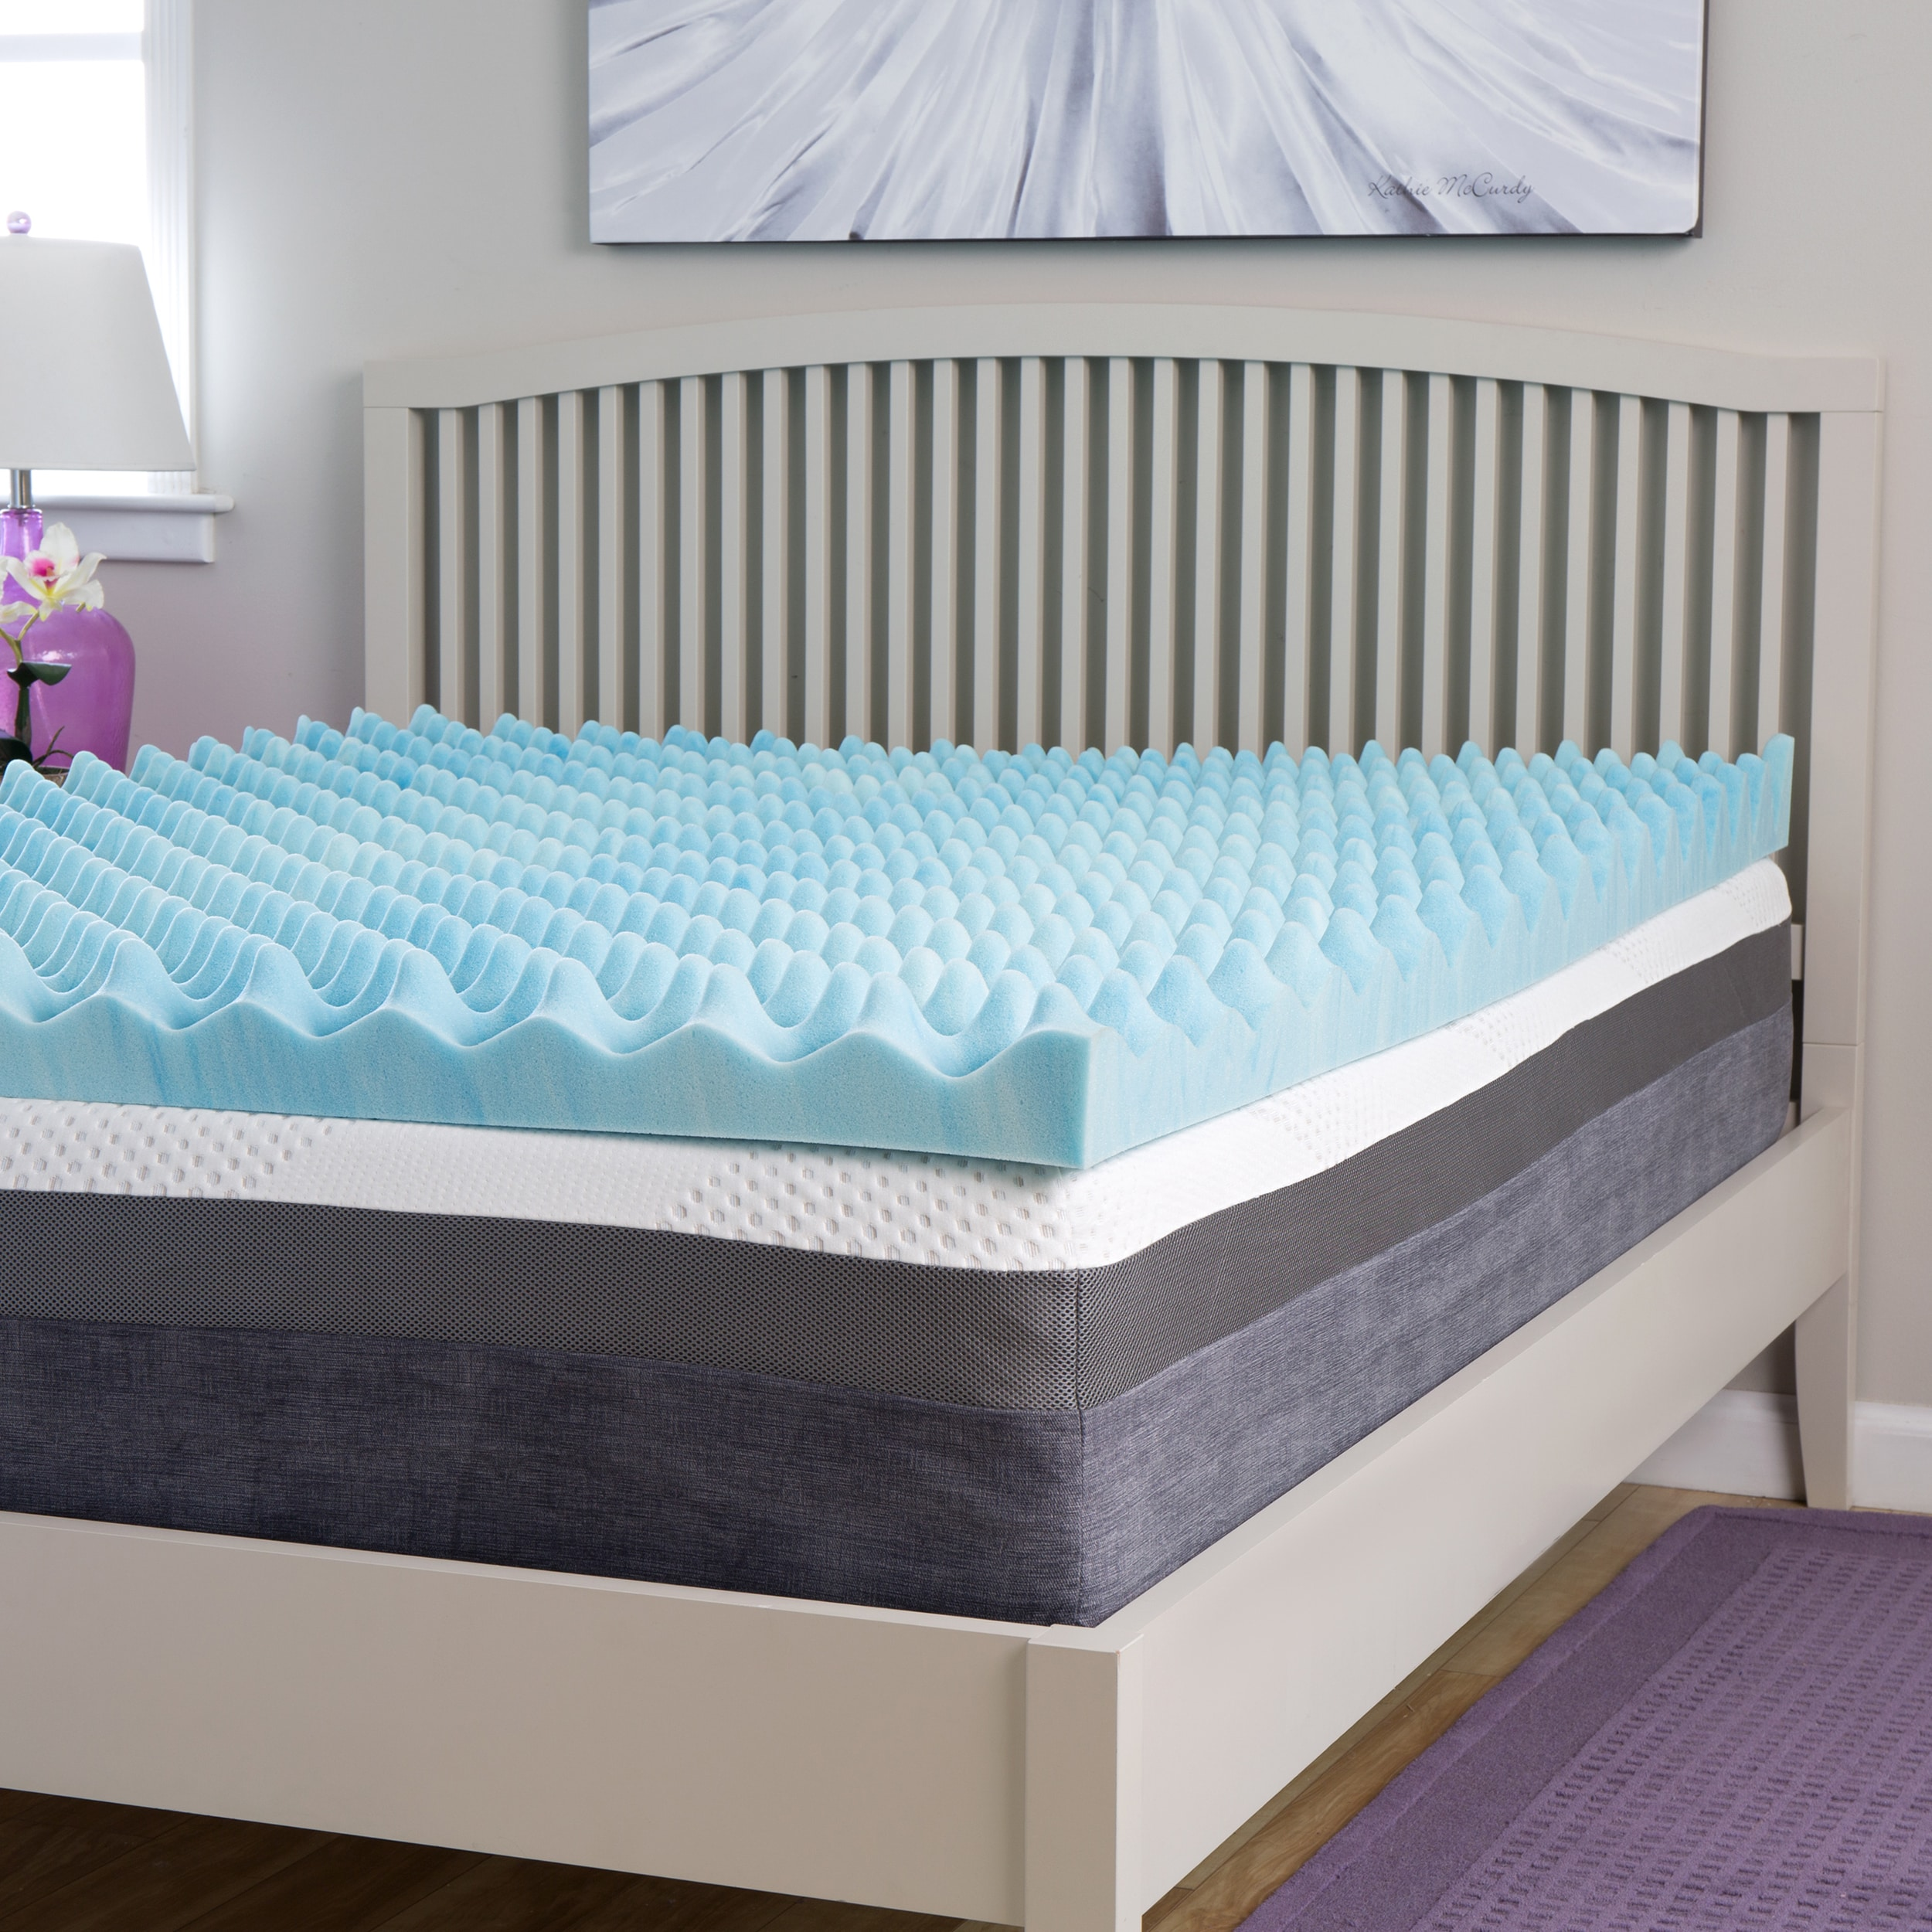 Gel Topper 200x200 Slumber Perfect Big Bump 4 Inch Gel Memory Foam Topper